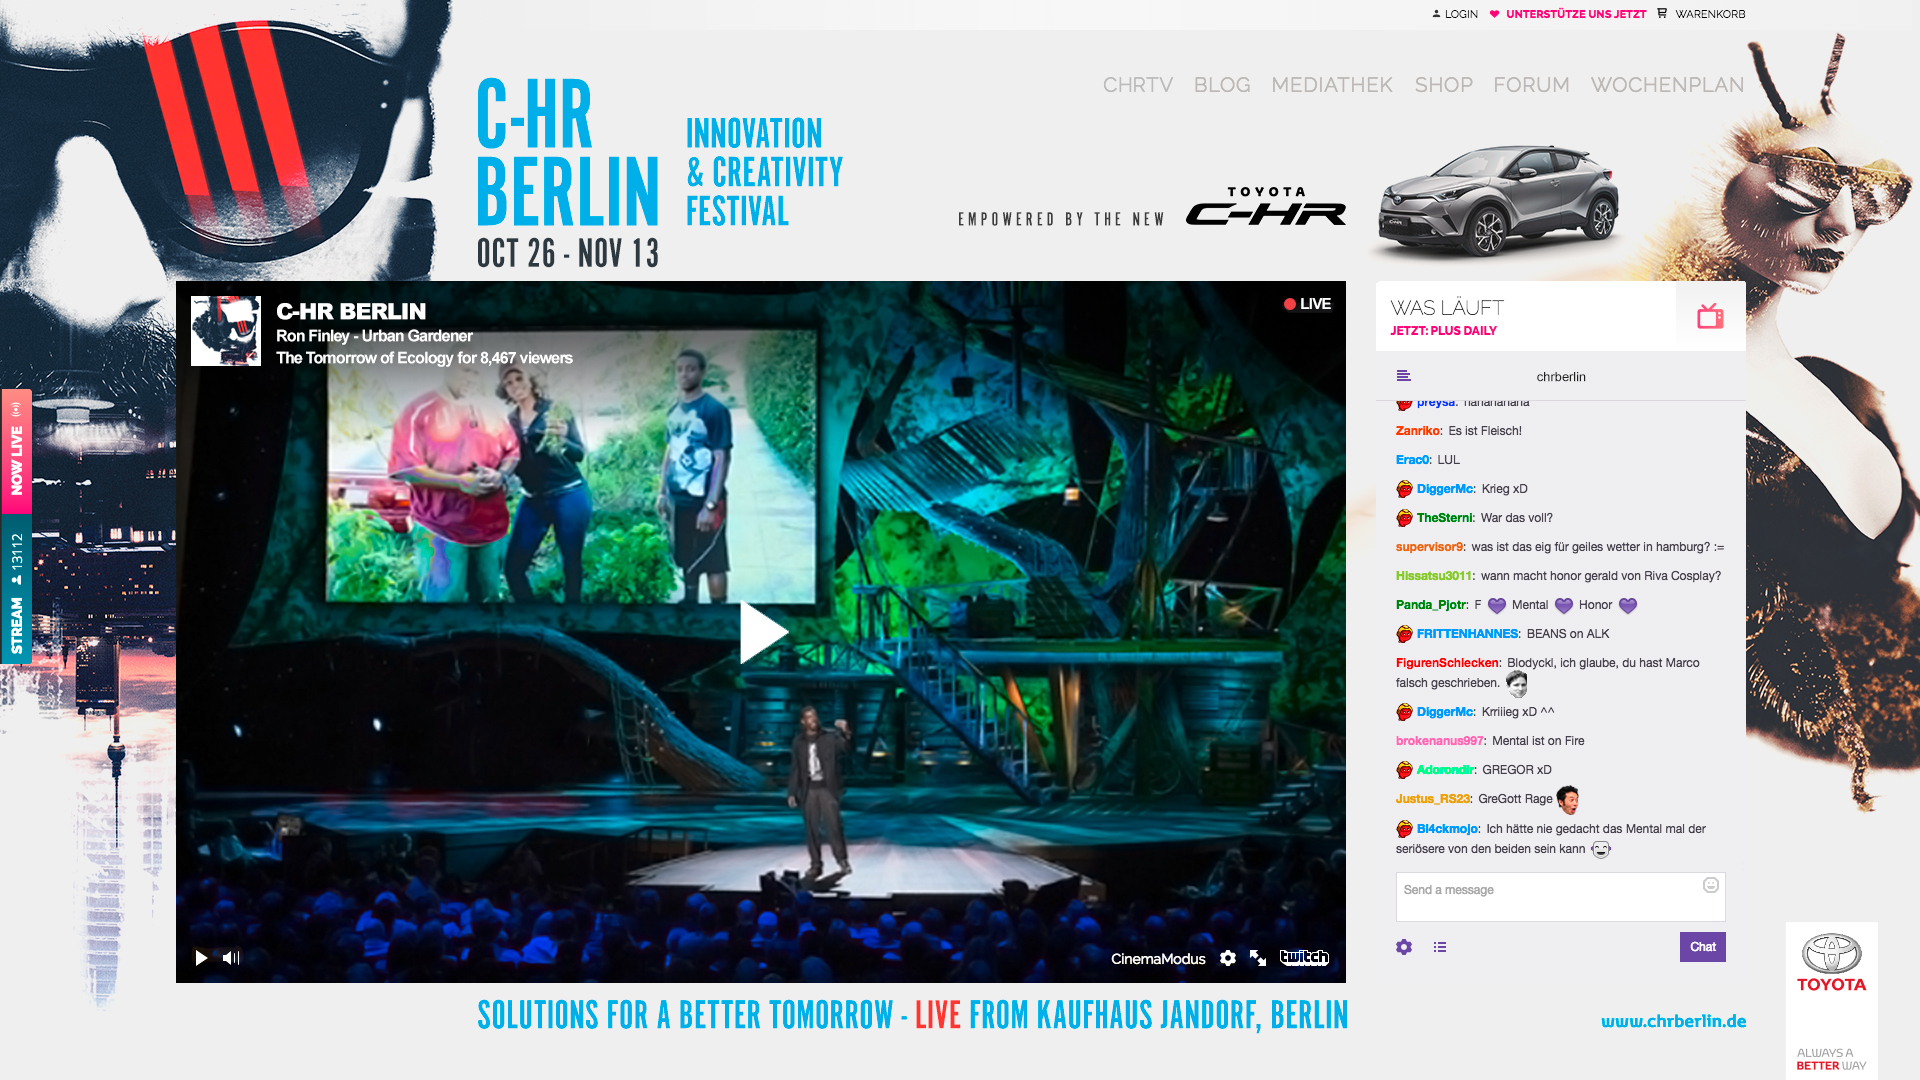 C-HR_BERLIN_twitch_mockup2.jpg